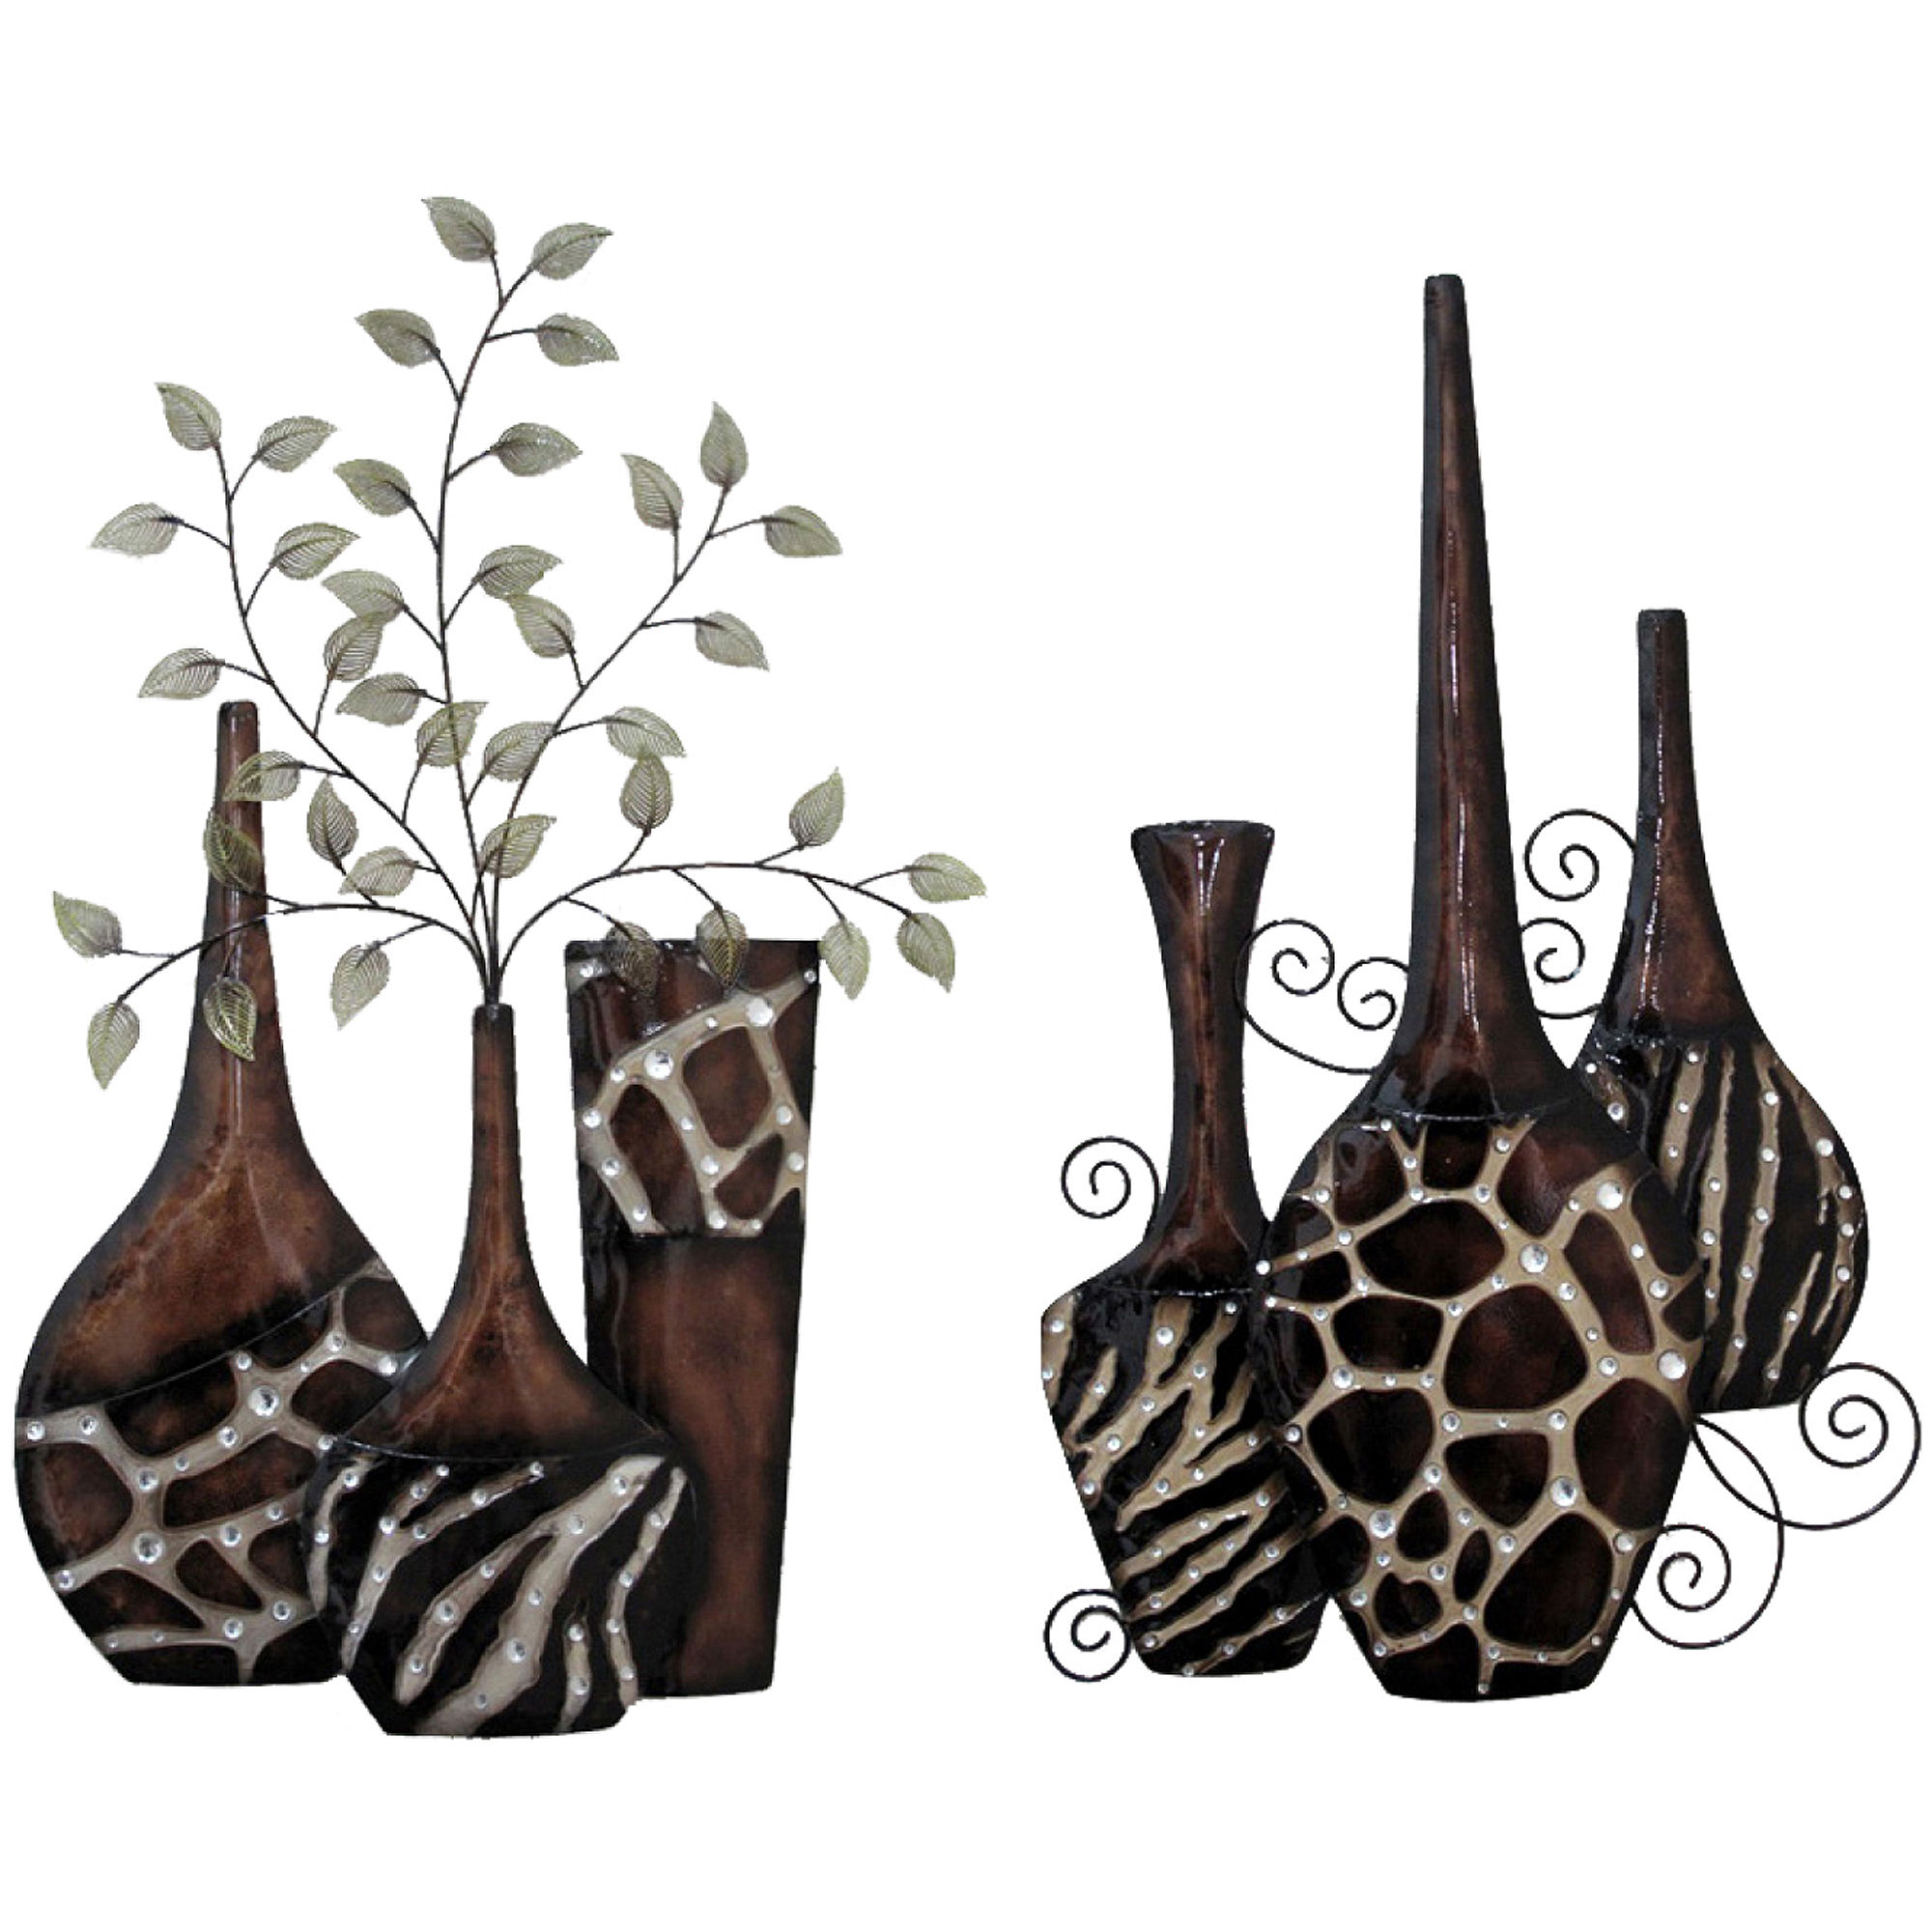 Upc 814461021876 set of 2 faux animal print vases wall decor upc 814461021876 product image for exotic vase metal wall decor upcitemdb reviewsmspy